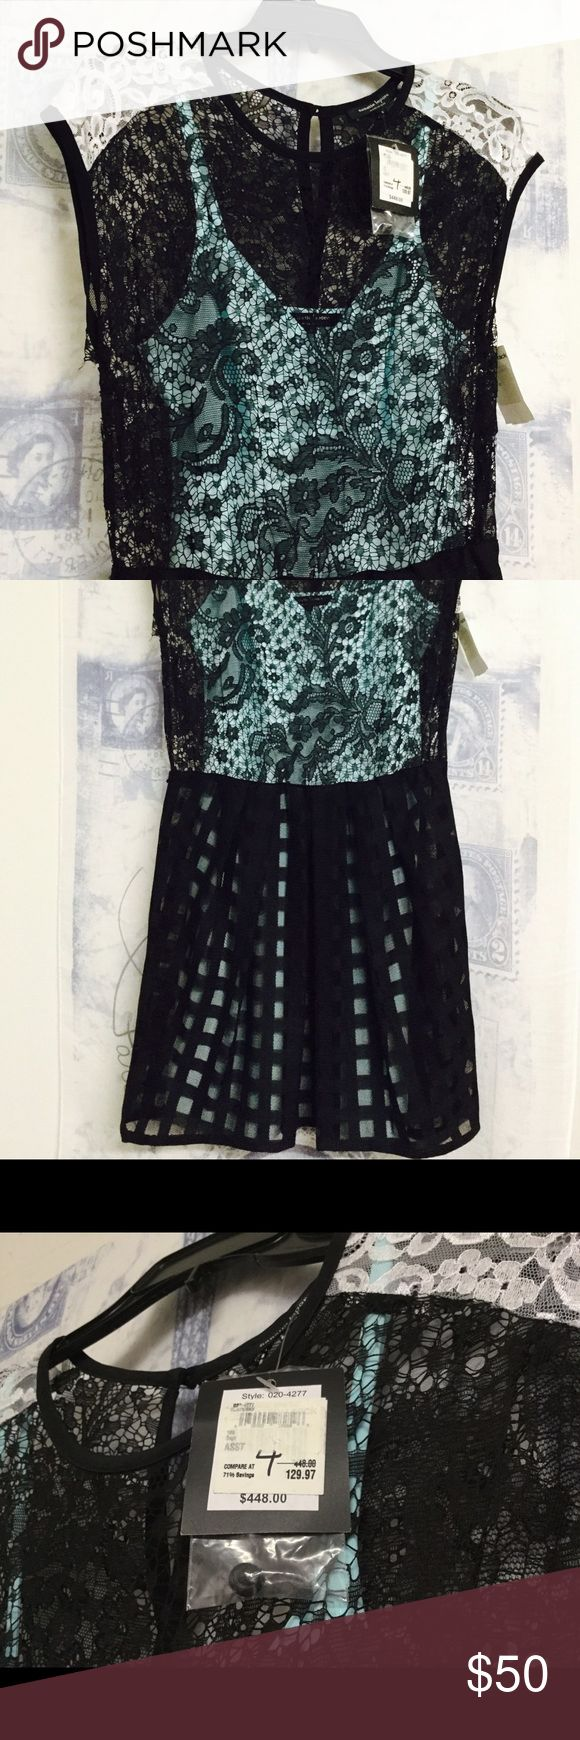 Nanette Lepore Just Dance Dress Dress is made of a black lace overlay and a detachable light blue silk slip. No belt included. Bought new, never worn. Smoke free, pet free home. Time to go to a new home! Nanette Lepore Dresses